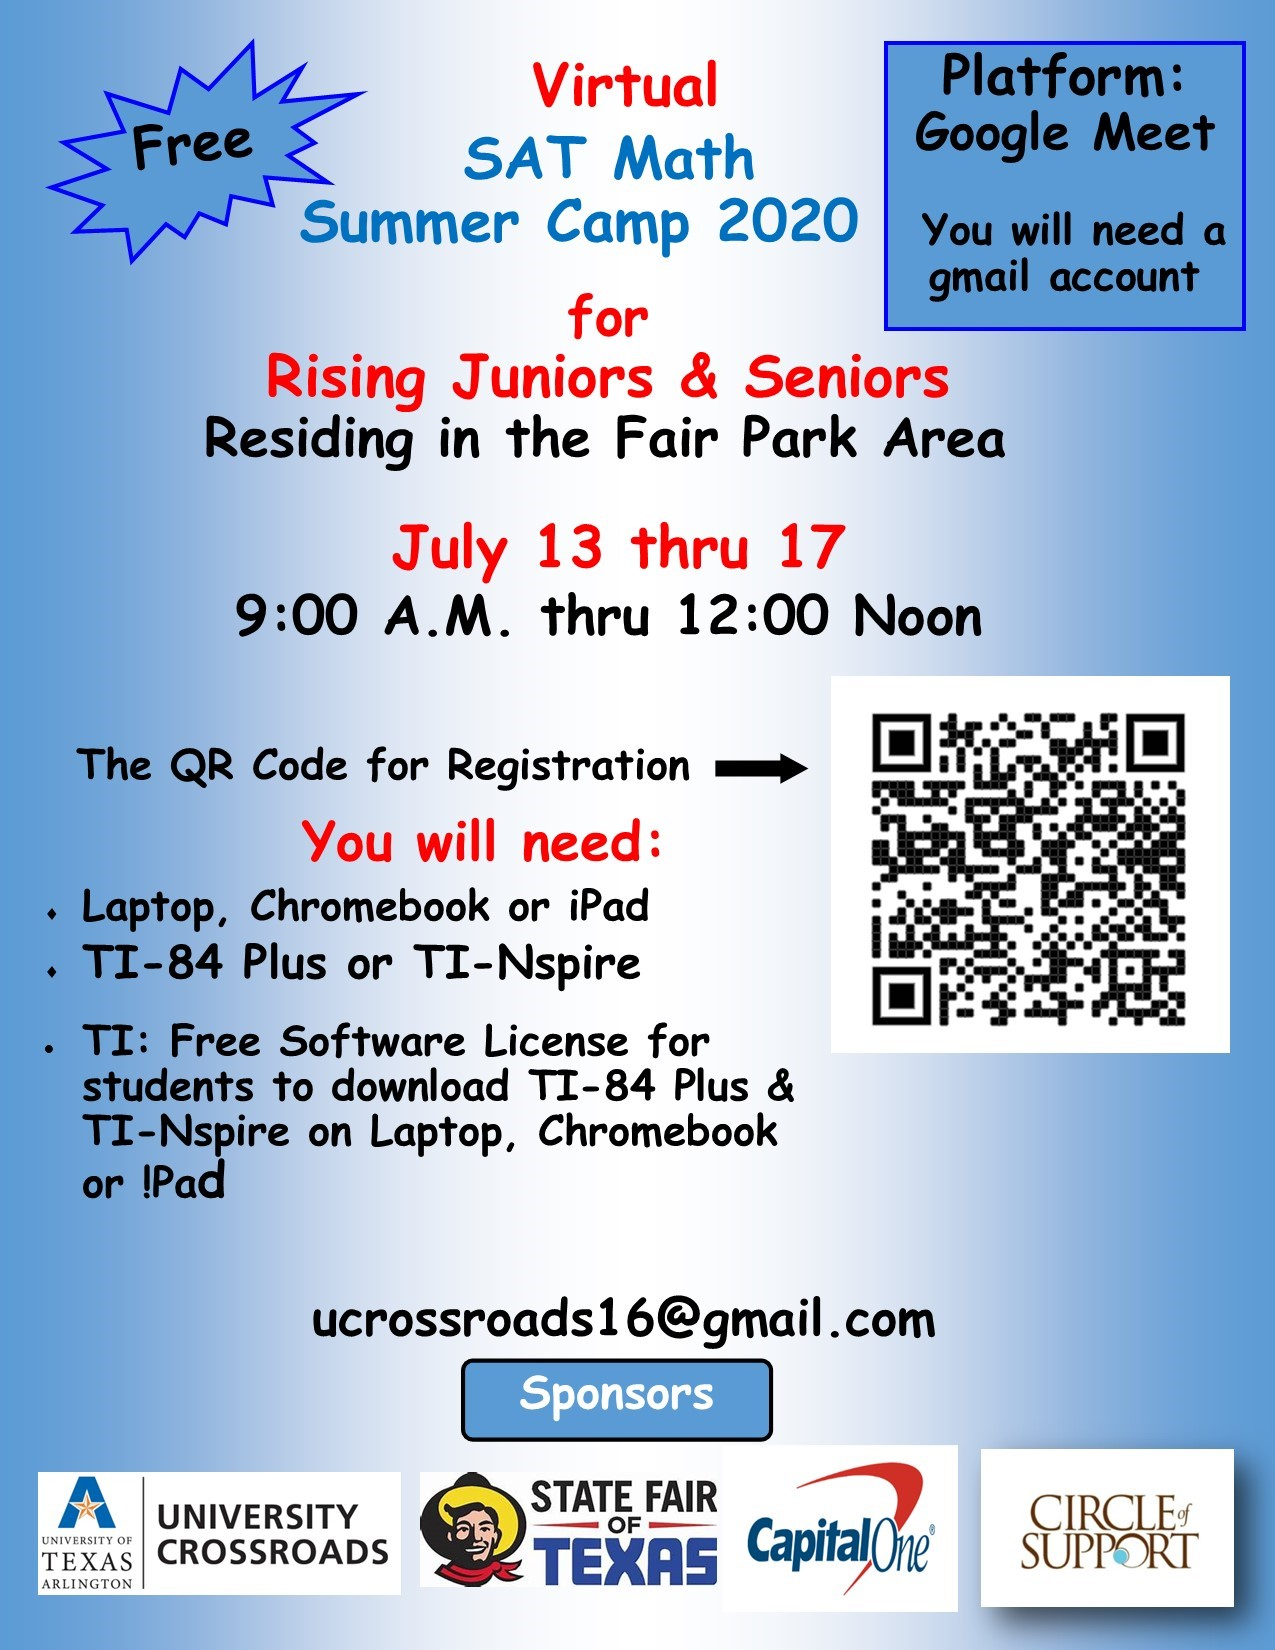 Virtual SAT Math Summer Camp: July 13-17